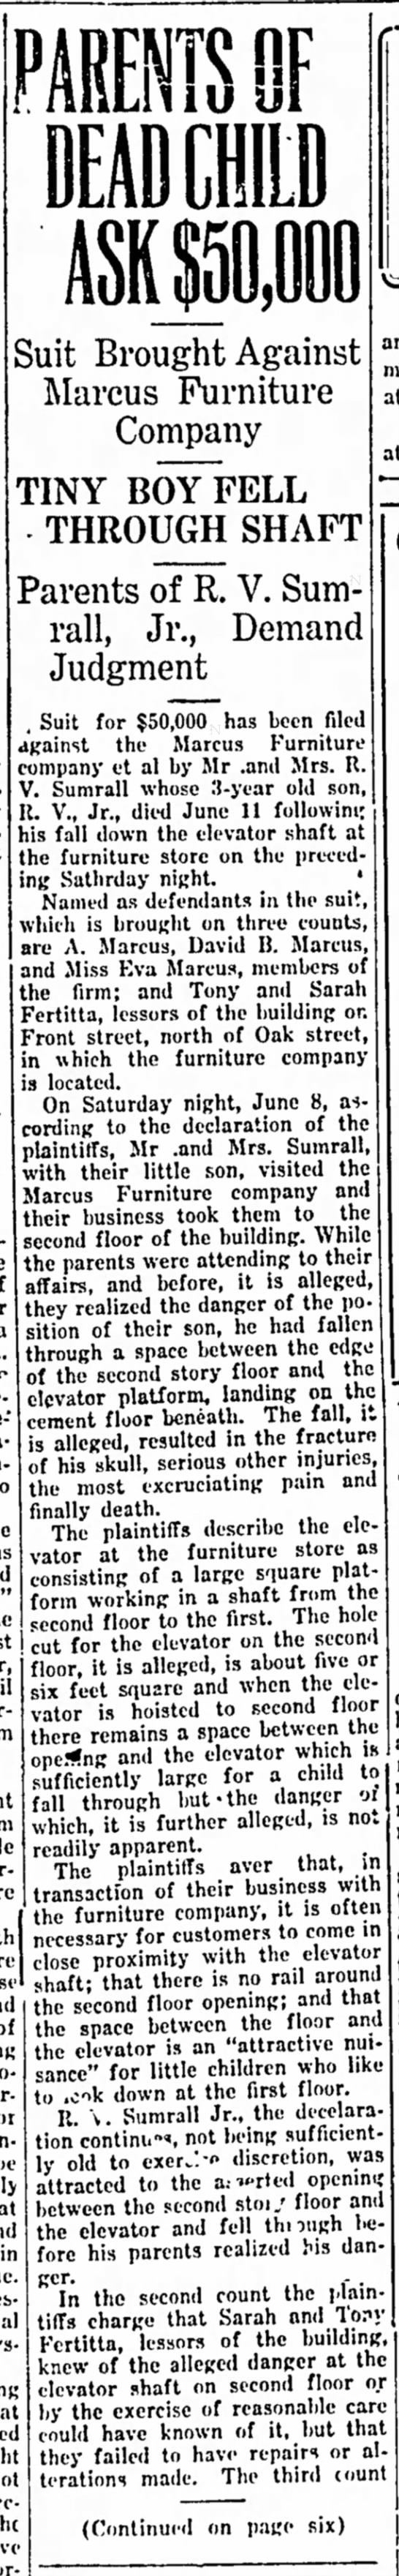 Marcus Furniture Fatality 16 June 1929 - Topeka, Suit Brought Against Marcus Furniture...